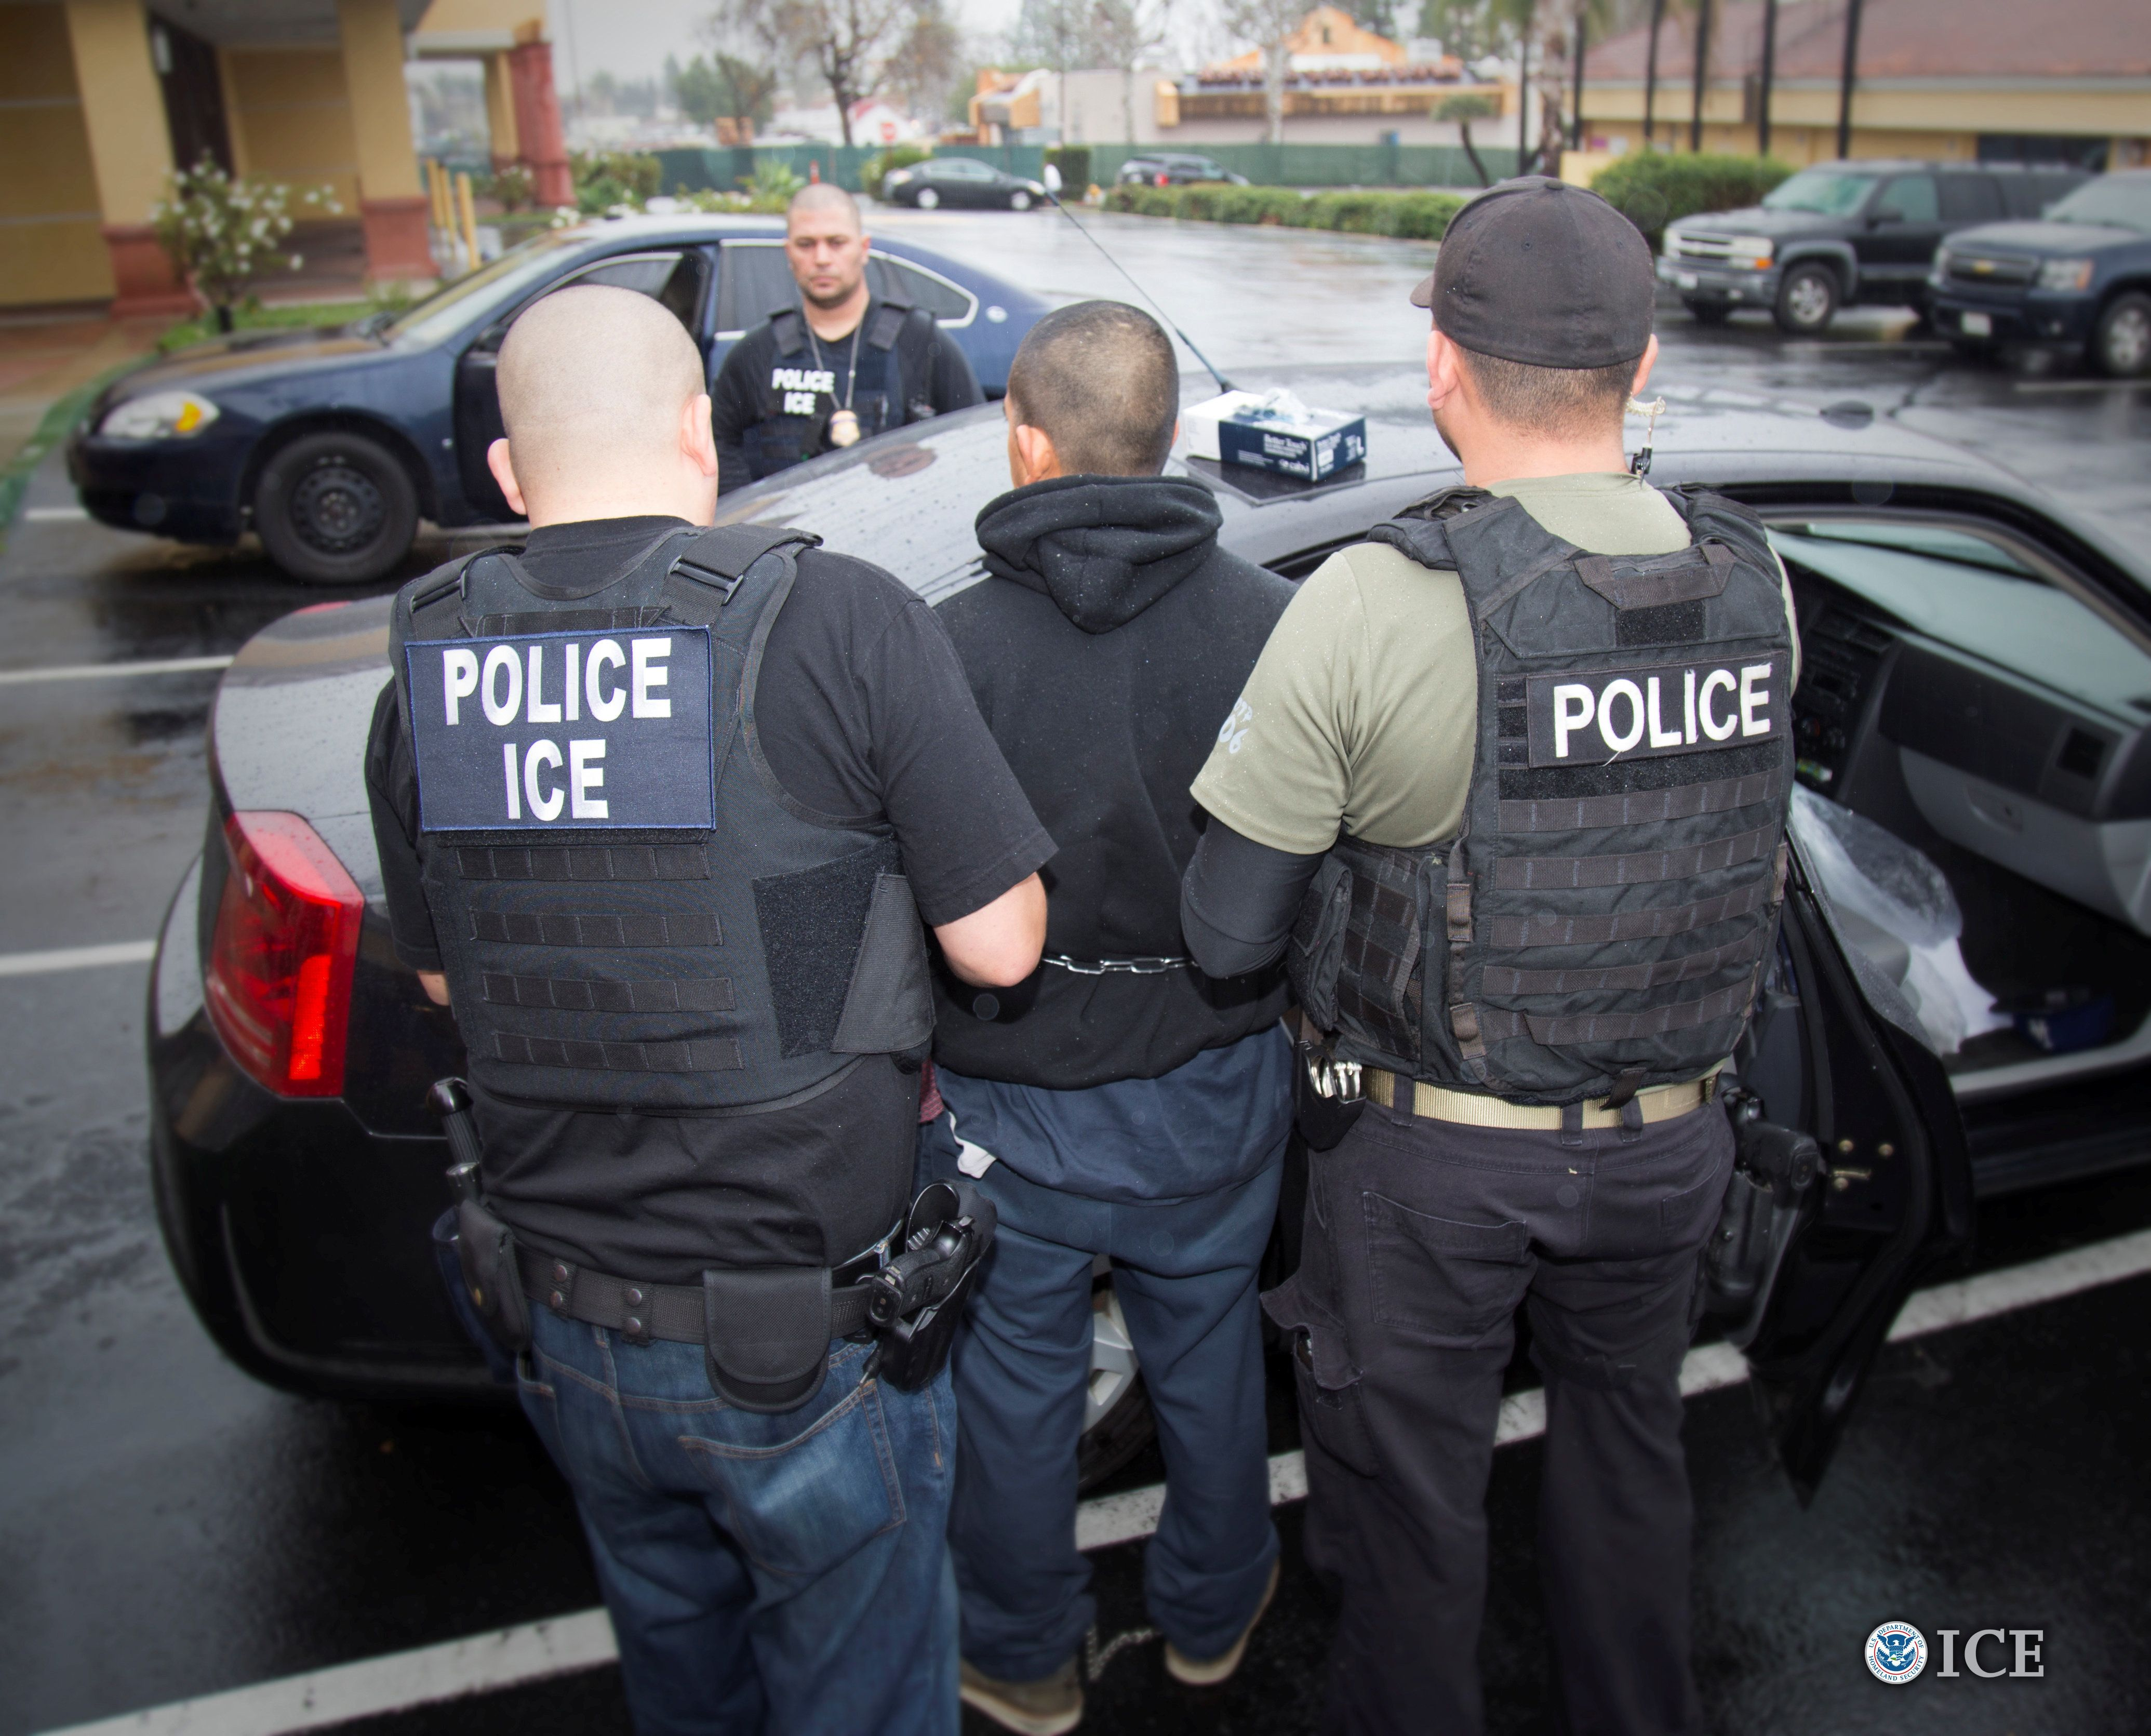 U.S. Immigration and Customs Enforcement (ICE) officers detain a suspect as they conduct a targeted enforcement operation in Los Angeles, California, U.S. on February 7, 2017. Picture taken on February 7, 2017.   Courtesy Charles Reed/U.S. Immigration and Customs Enforcement via REUTERS      ATTENTION EDITORS - THIS IMAGE WAS PROVIDED BY A THIRD PARTY. EDITORIAL USE ONLY.